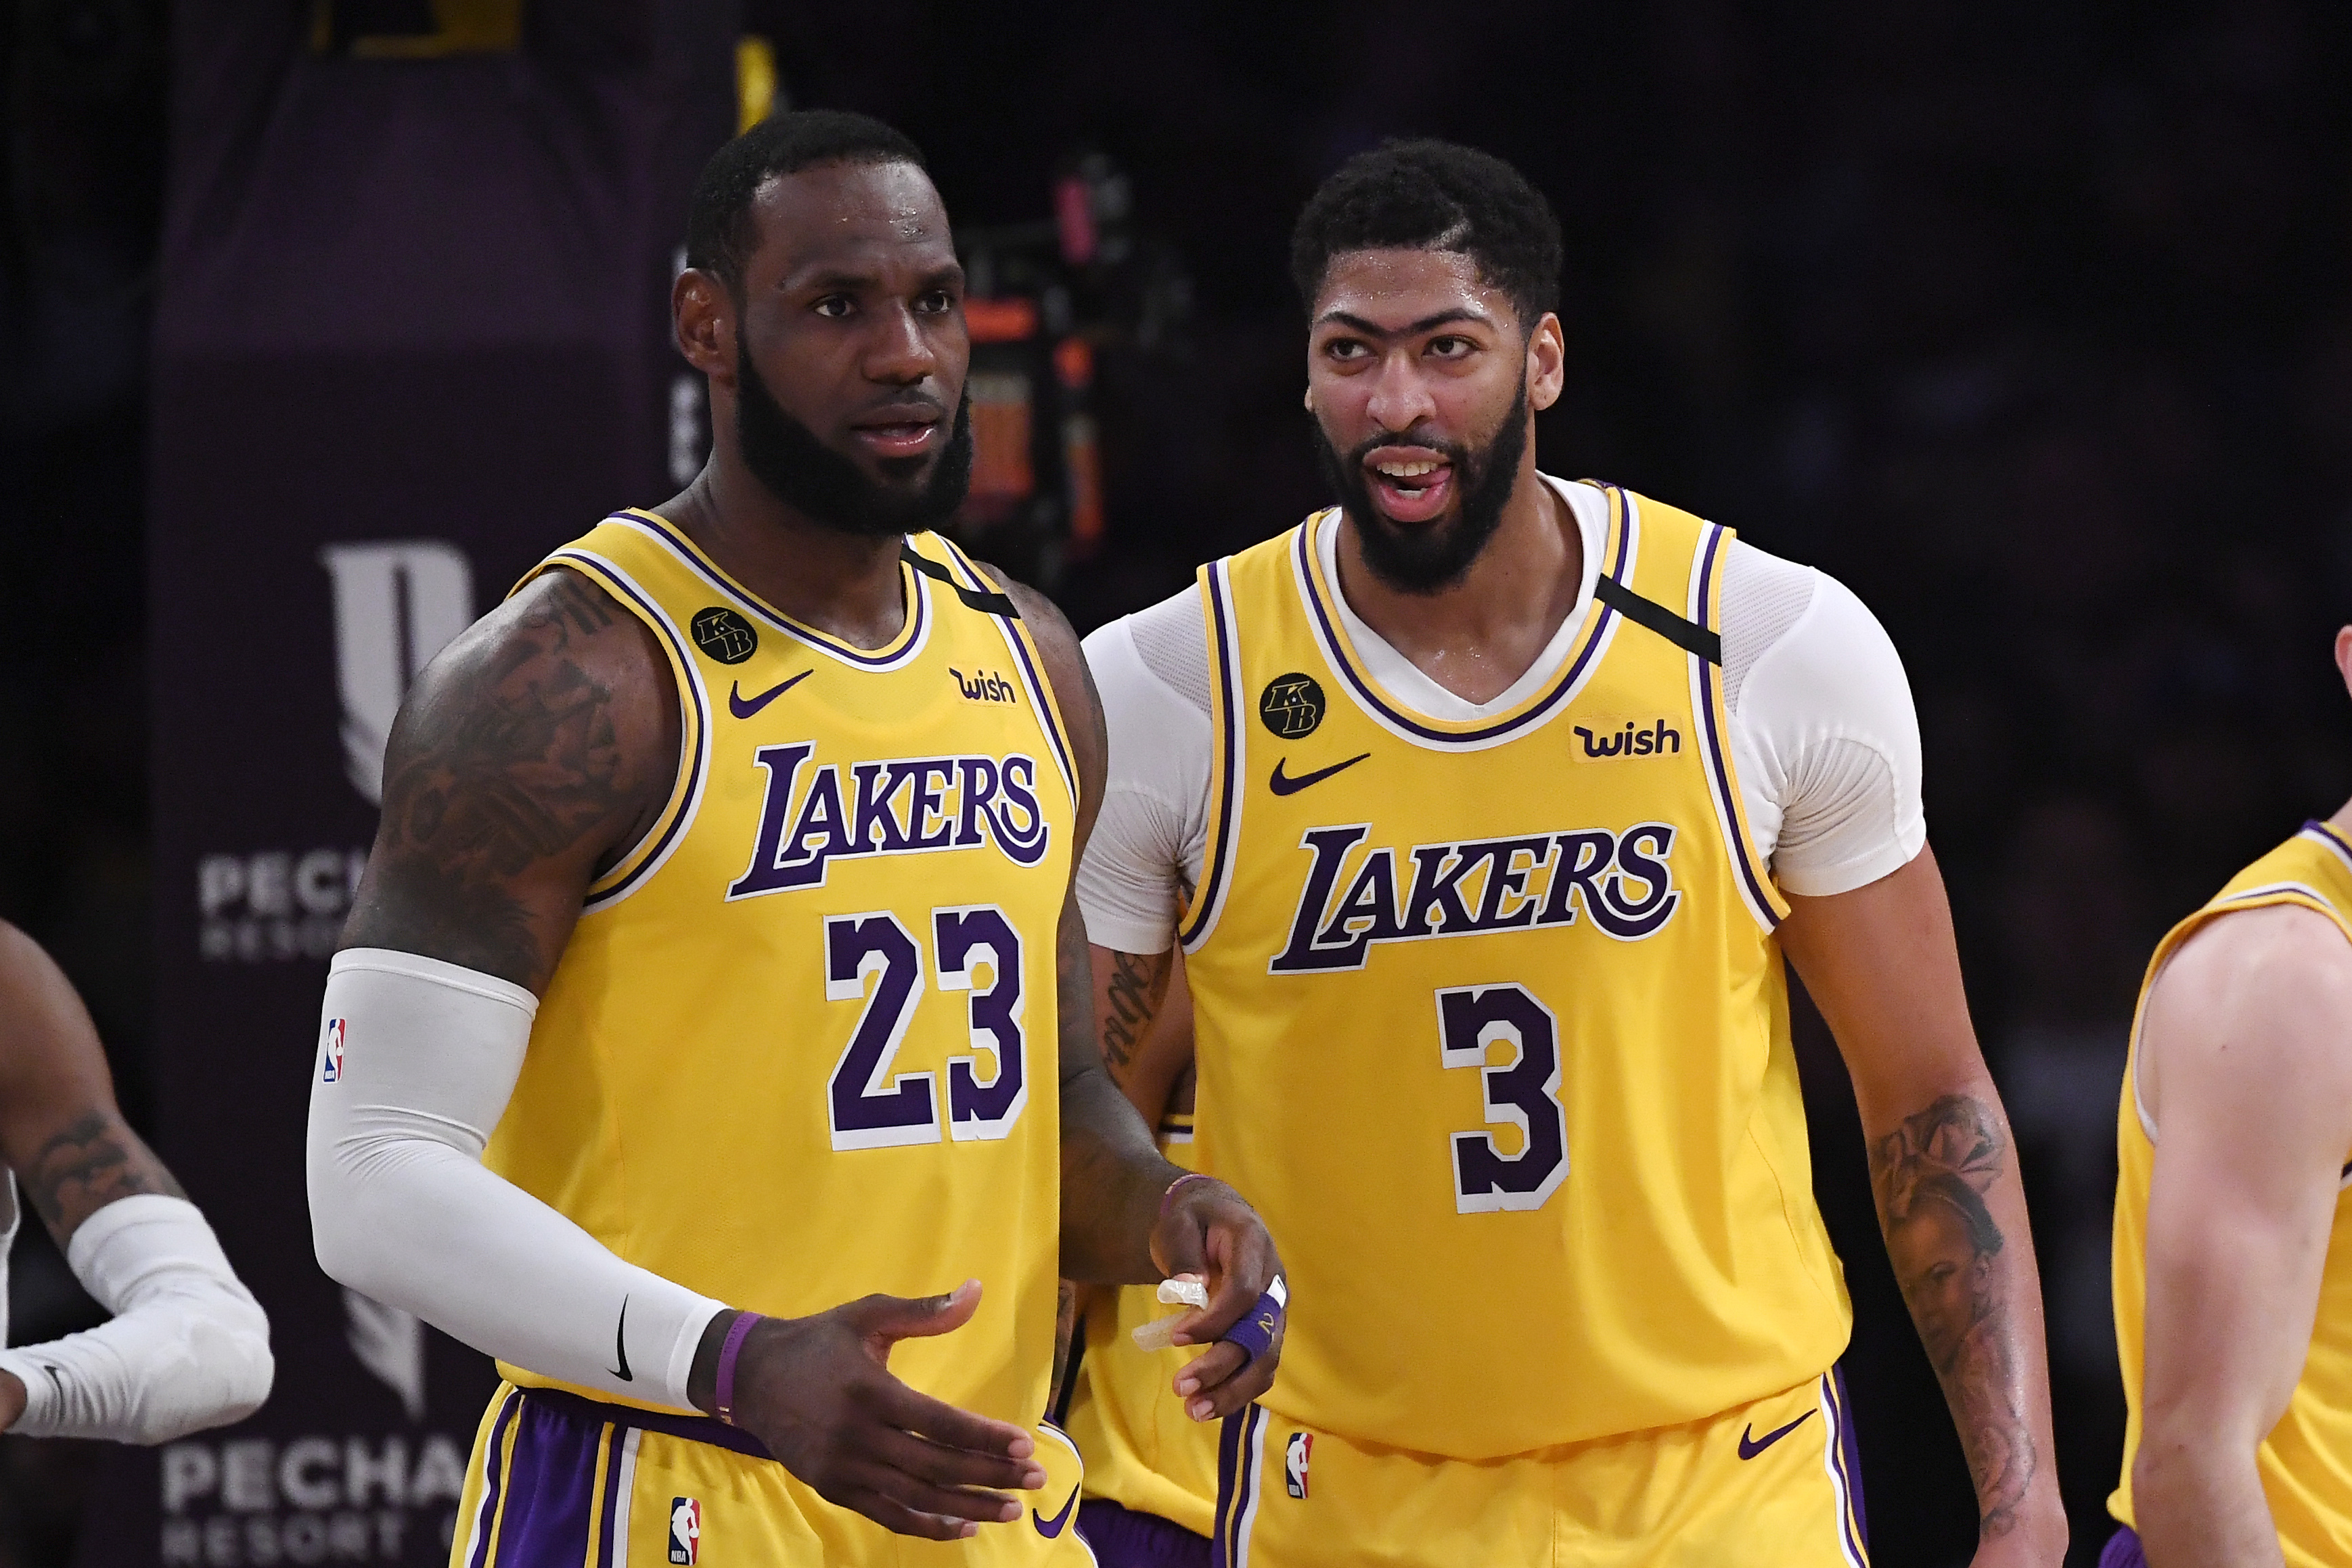 Oklahoma City Thunder vs. Los Angeles Lakers FREE LIVE STREAM (8/5/20): How  to watch NBA Basketball, time, channel, betting odds - pennlive.com